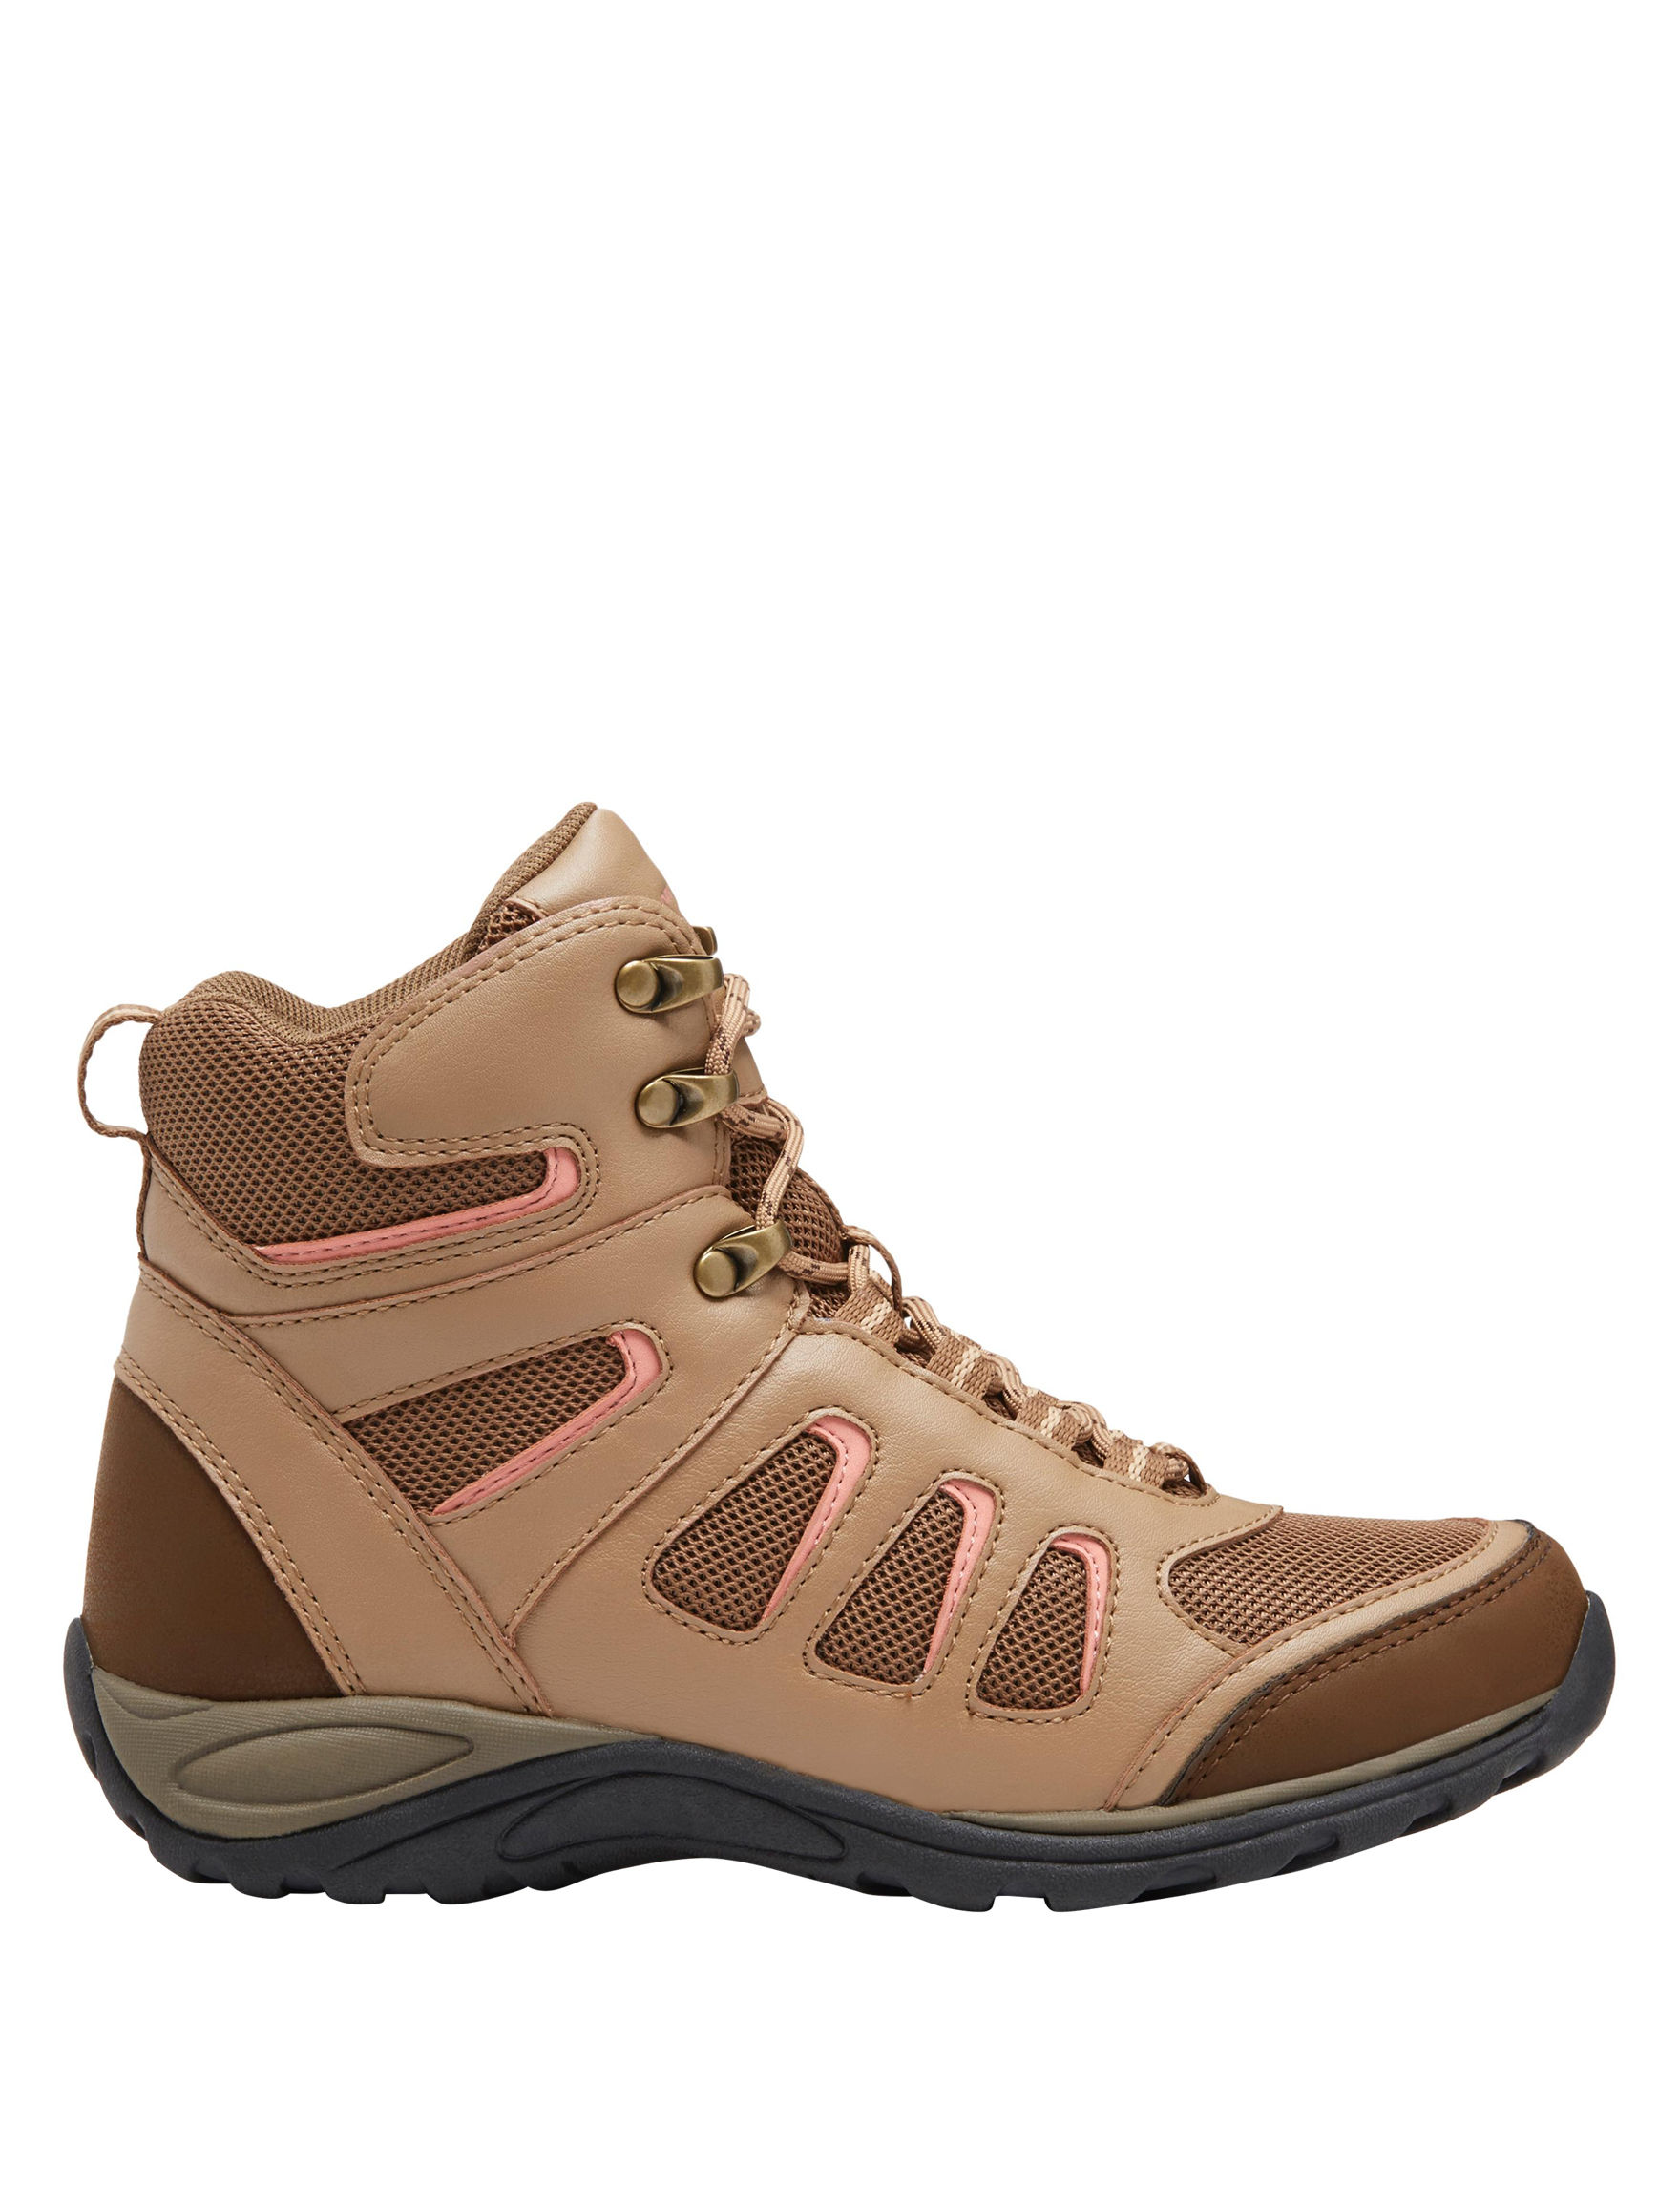 3e09a1a81 Eastland Ash Hiking Boots | Stage Stores